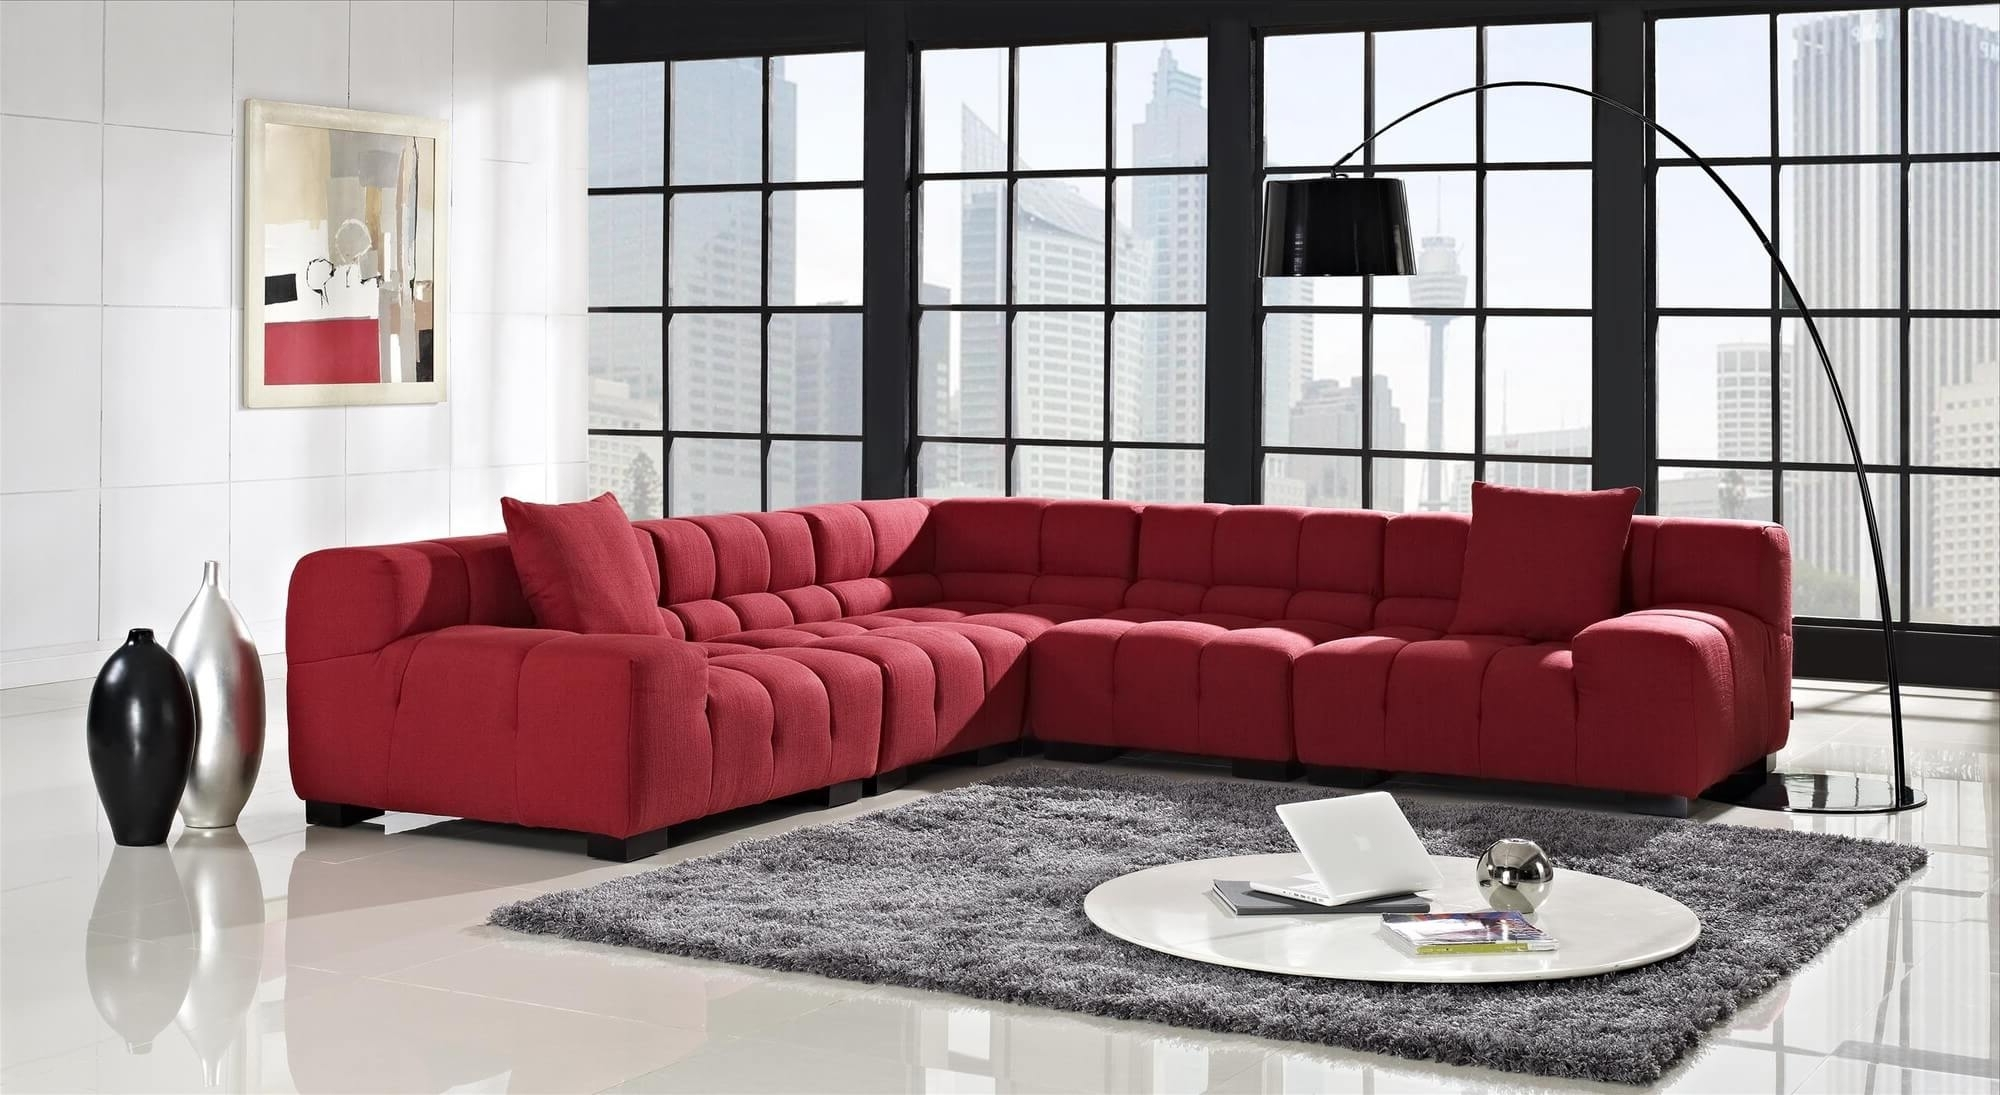 Modern Sectional Sofas For Small Spaces Pertaining To Fashionable Loveseat Sectional Small Sectional Sofas For Small Spaces (View 7 of 20)